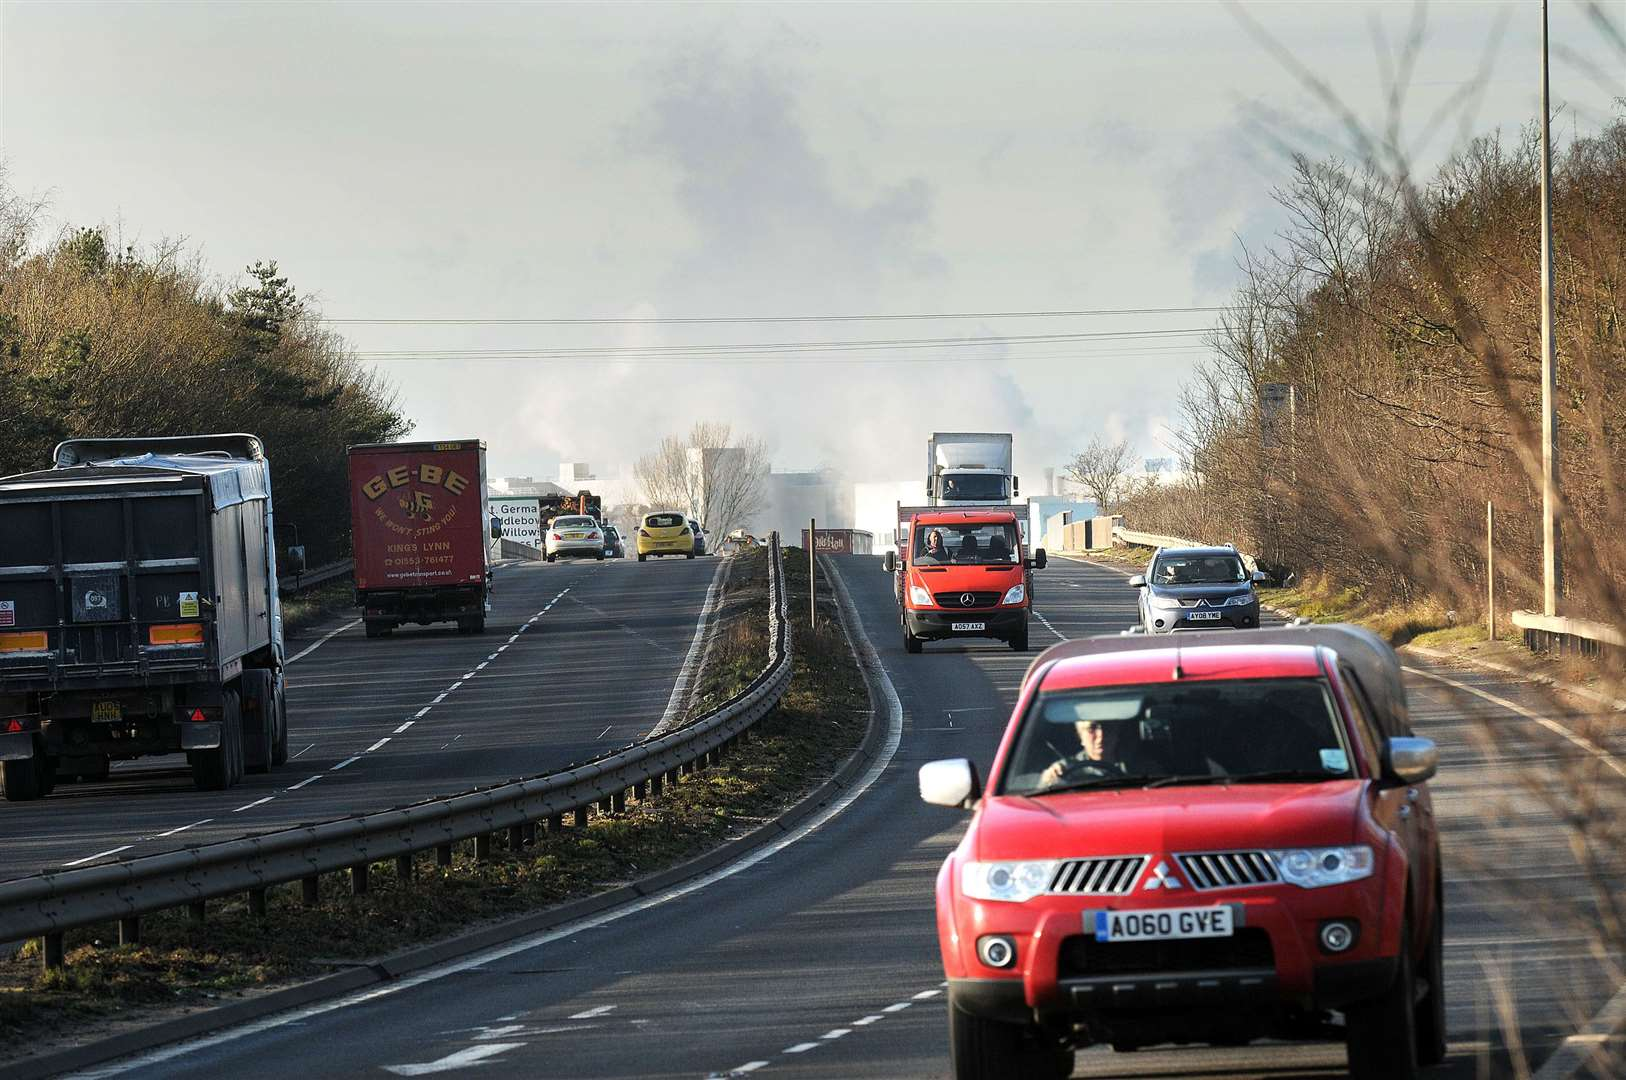 A Parliamentary reception is to be held to make the case for full dualling of the A47